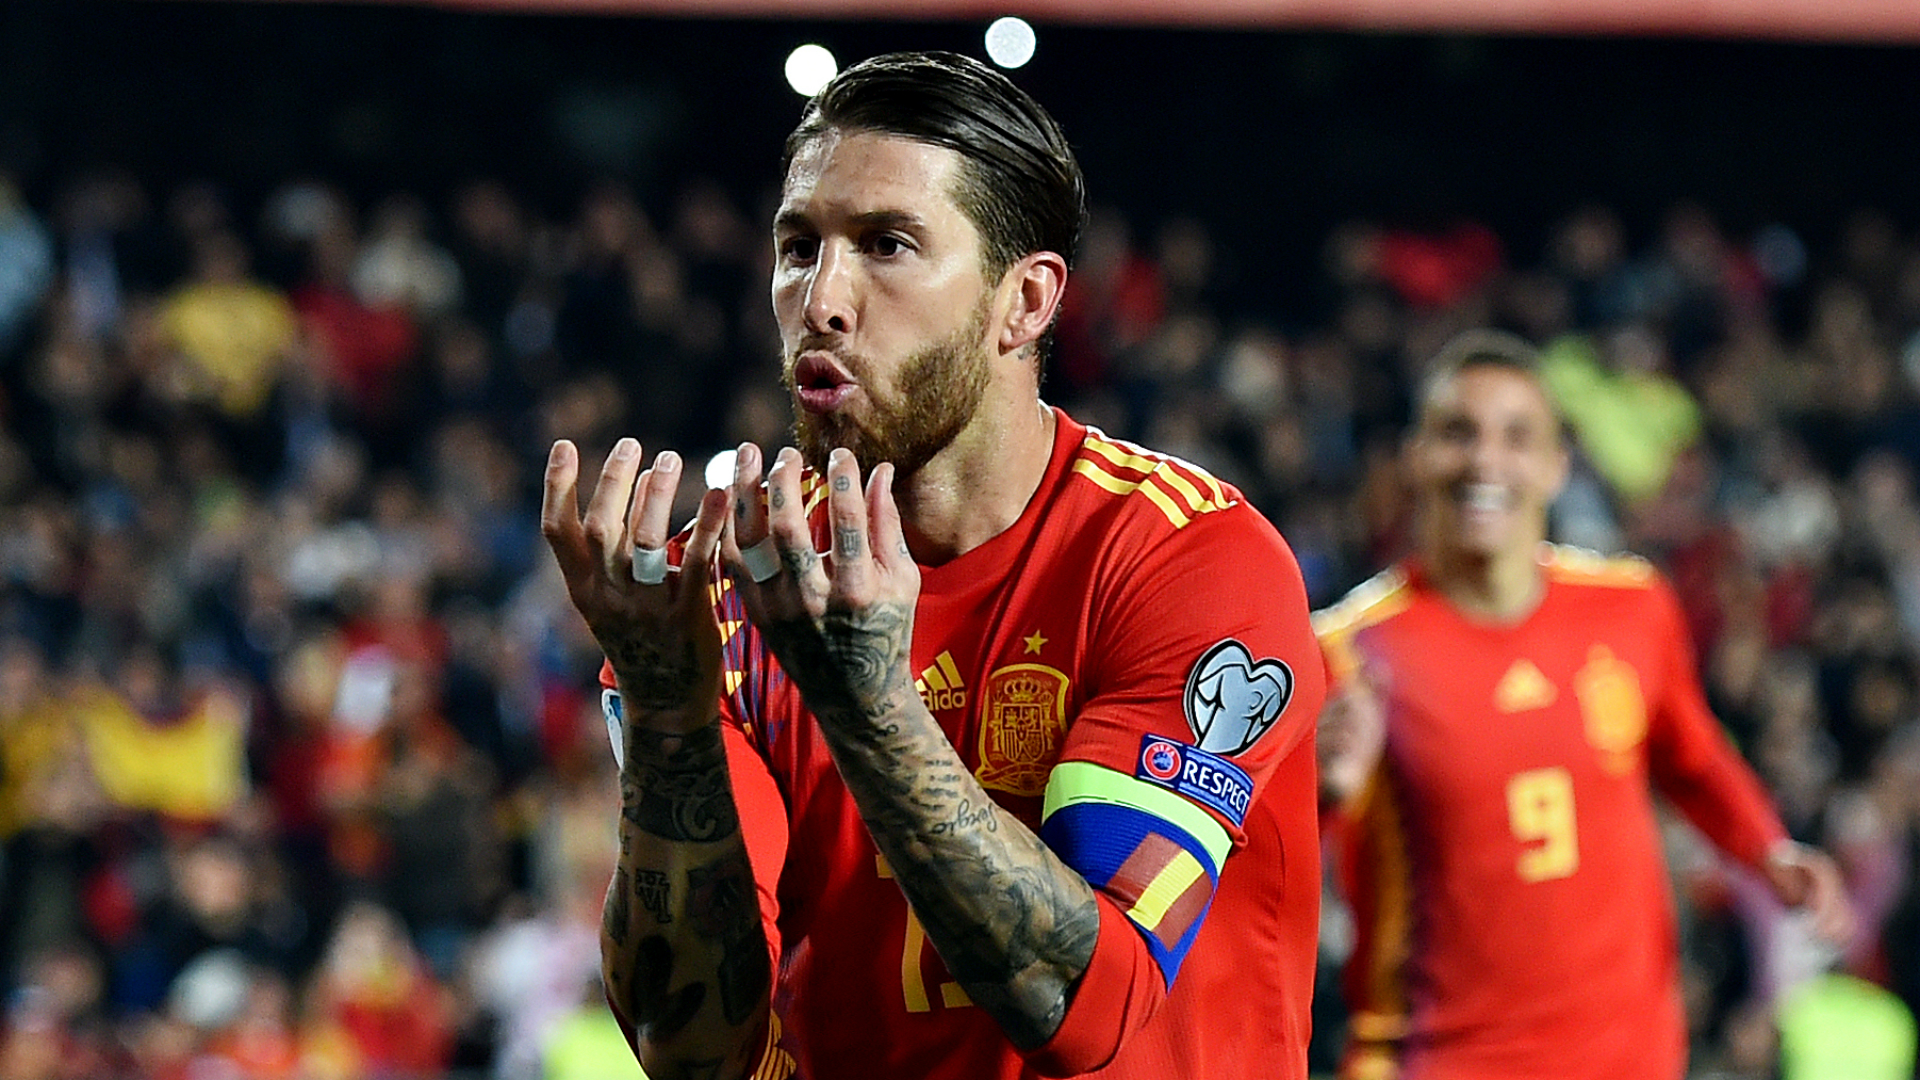 Spain 2 Norway 1: Ramos penalty gets La Roja up and running